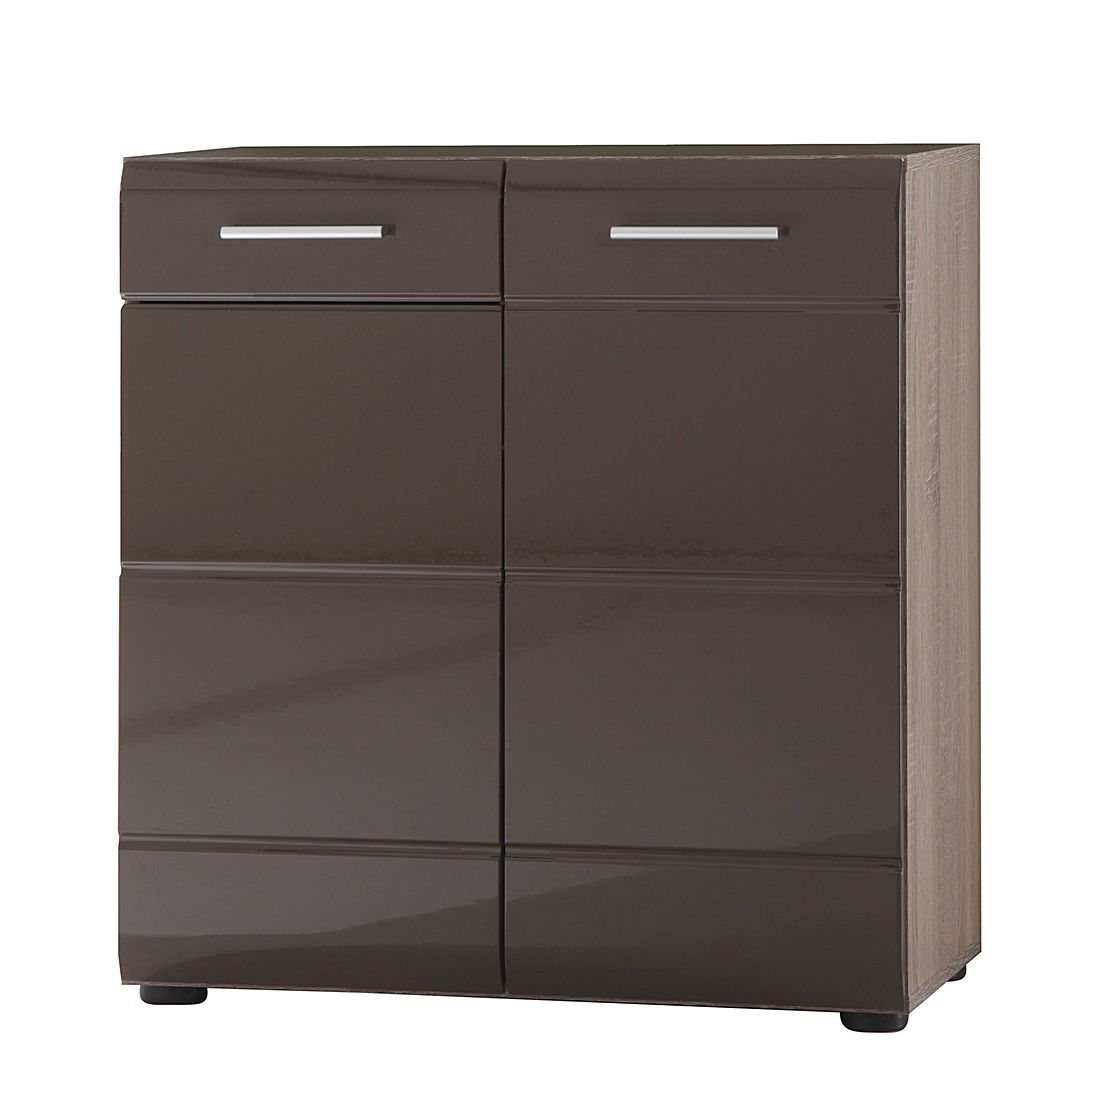 kommode storm ii eiche s gerau dunkel dekor blackbrown hochglanz. Black Bedroom Furniture Sets. Home Design Ideas